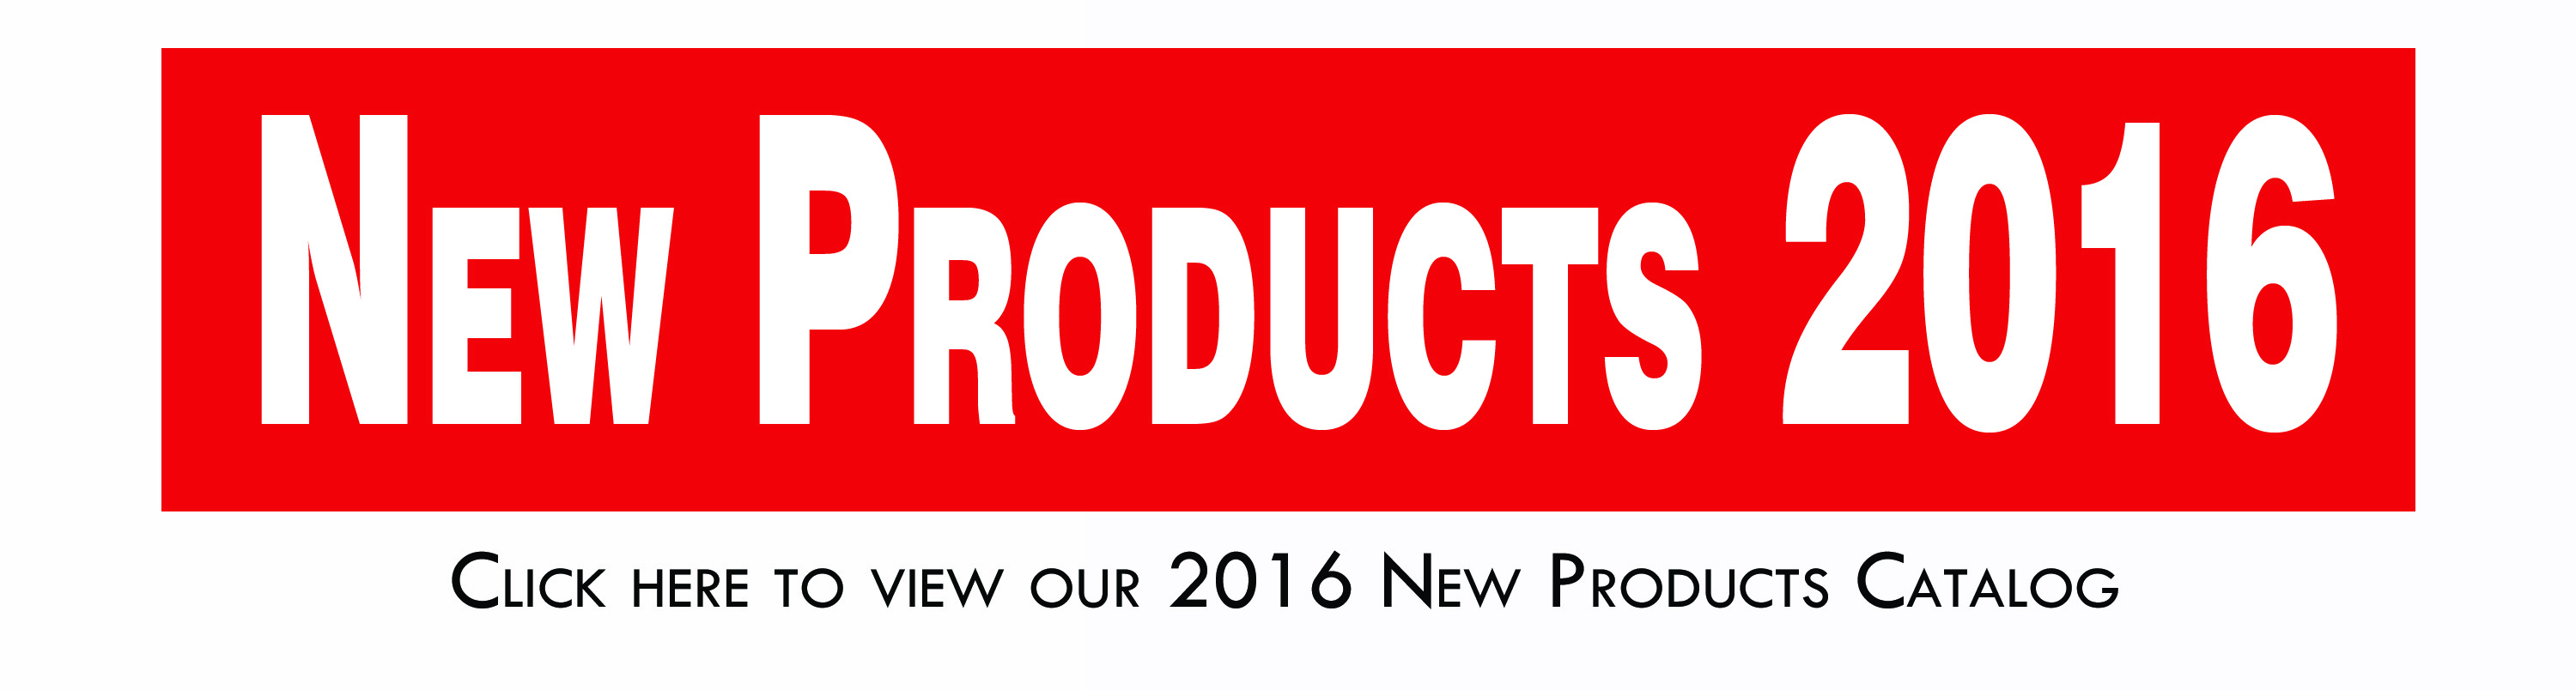 newproducts2016